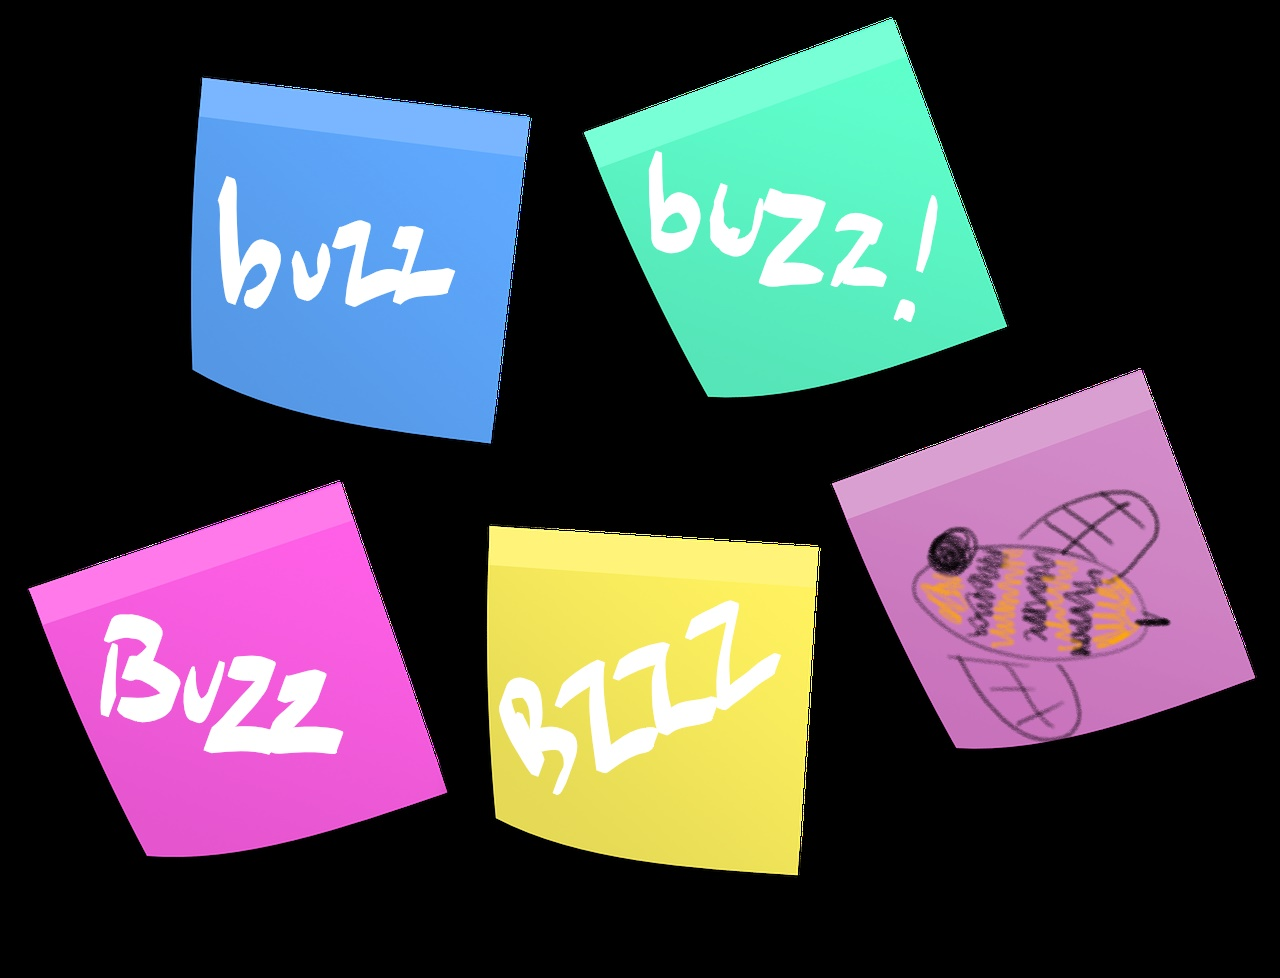 post it notes with buzz